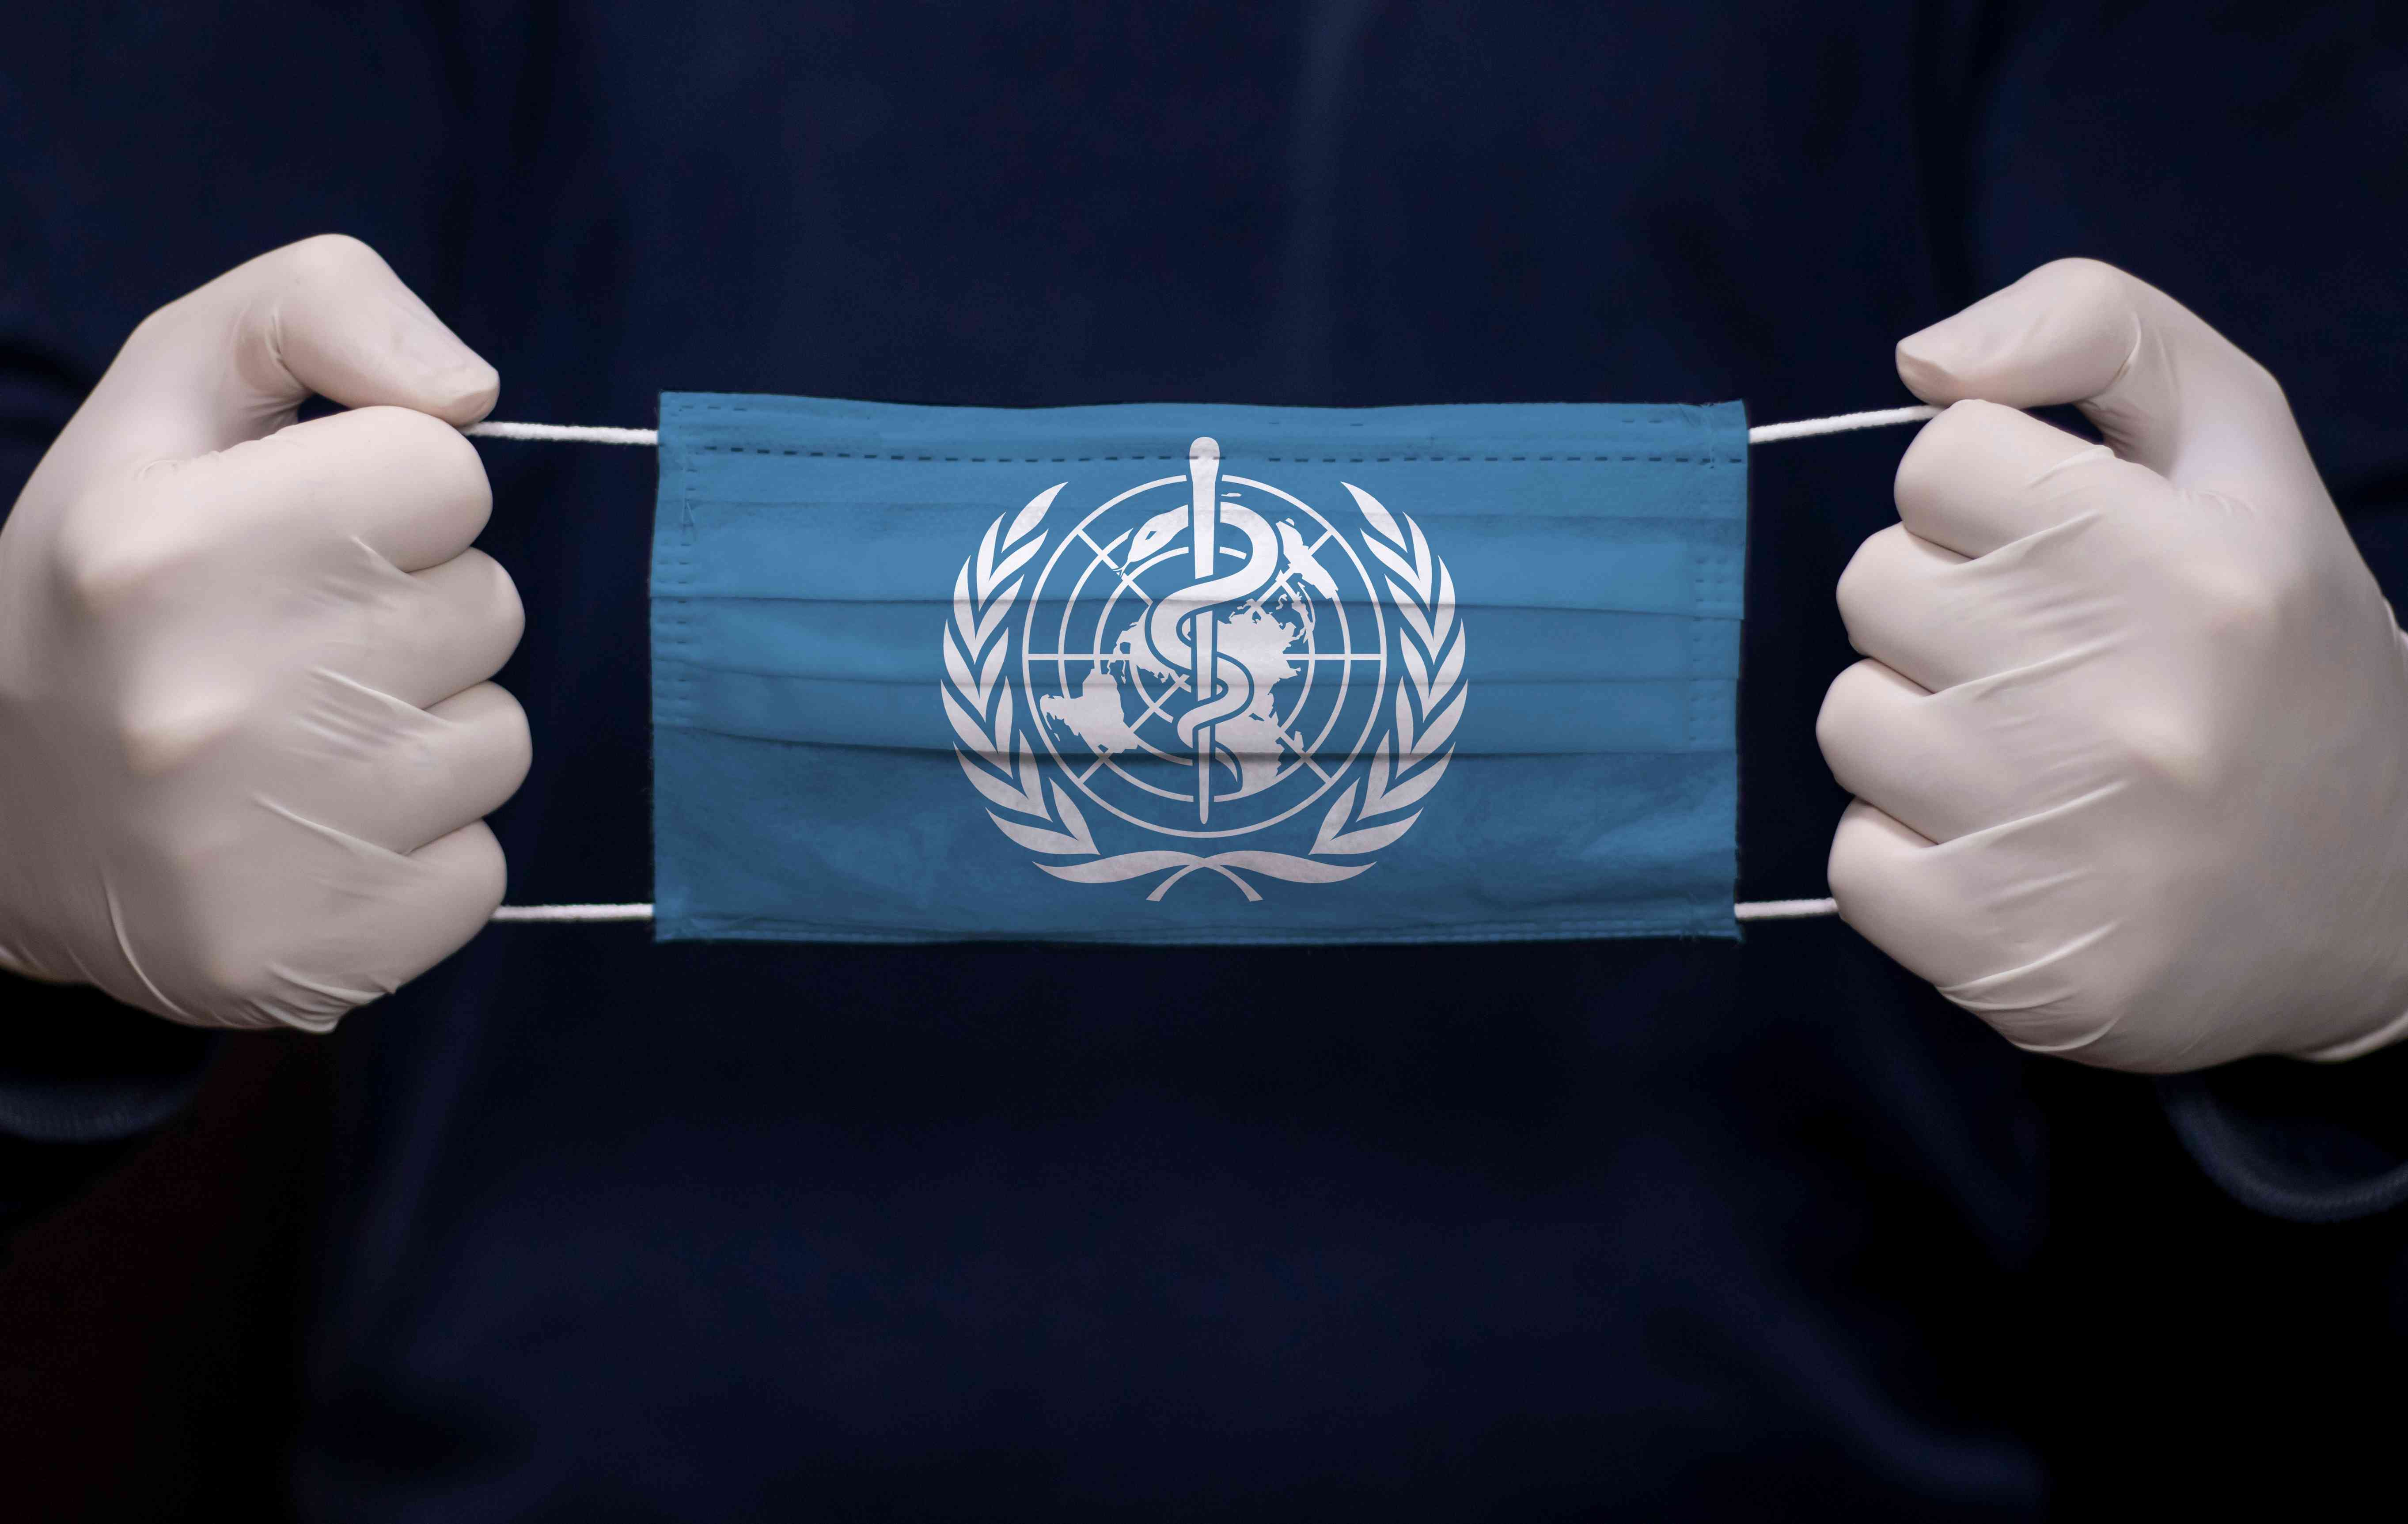 New initiative from WHO and UN Partners' aims to minimise diseases and save lives